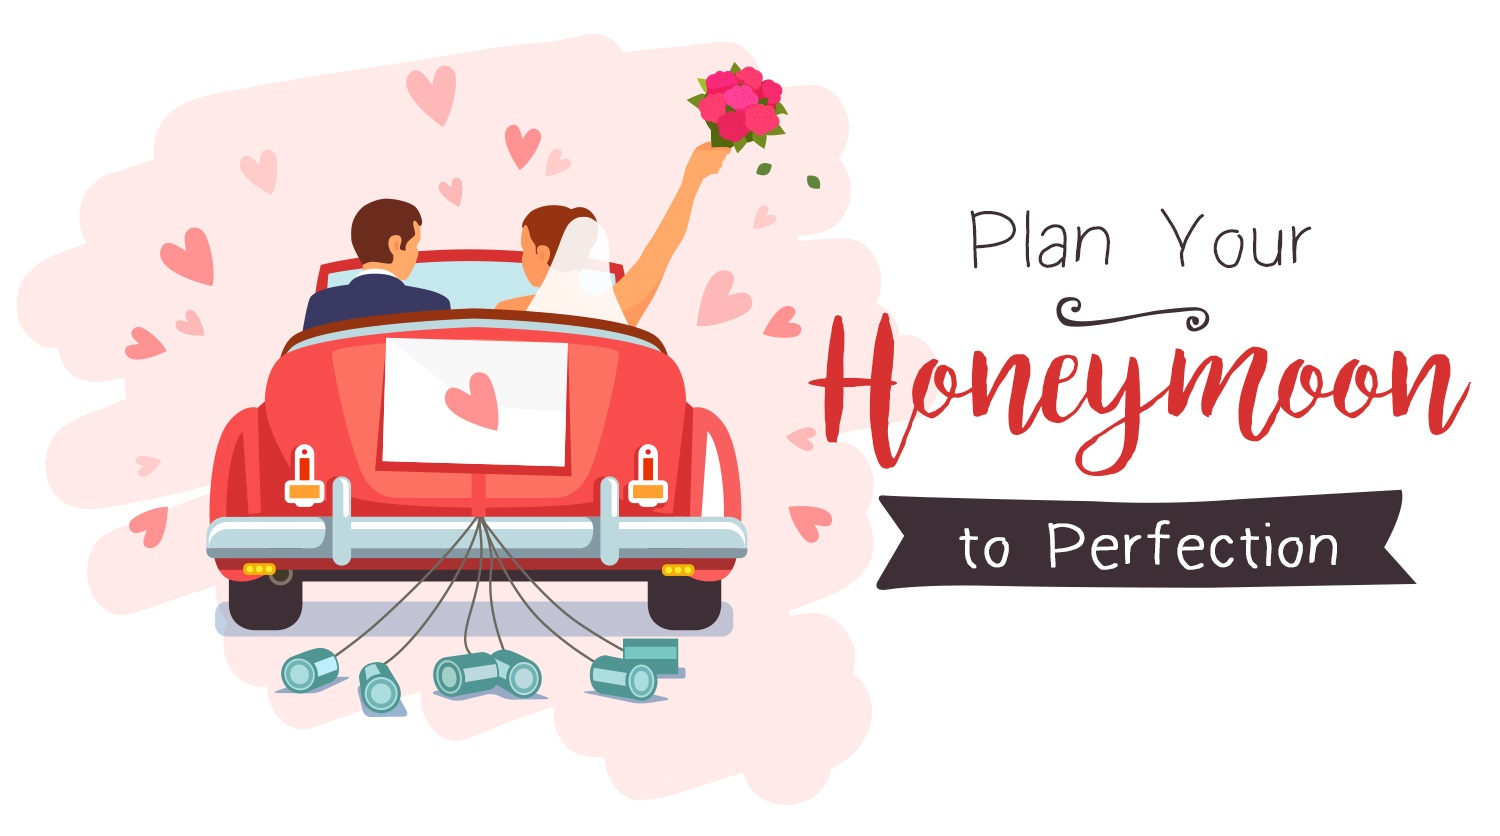 Plan-Your-Honeymoon-to-Perfection-Infographic - cover